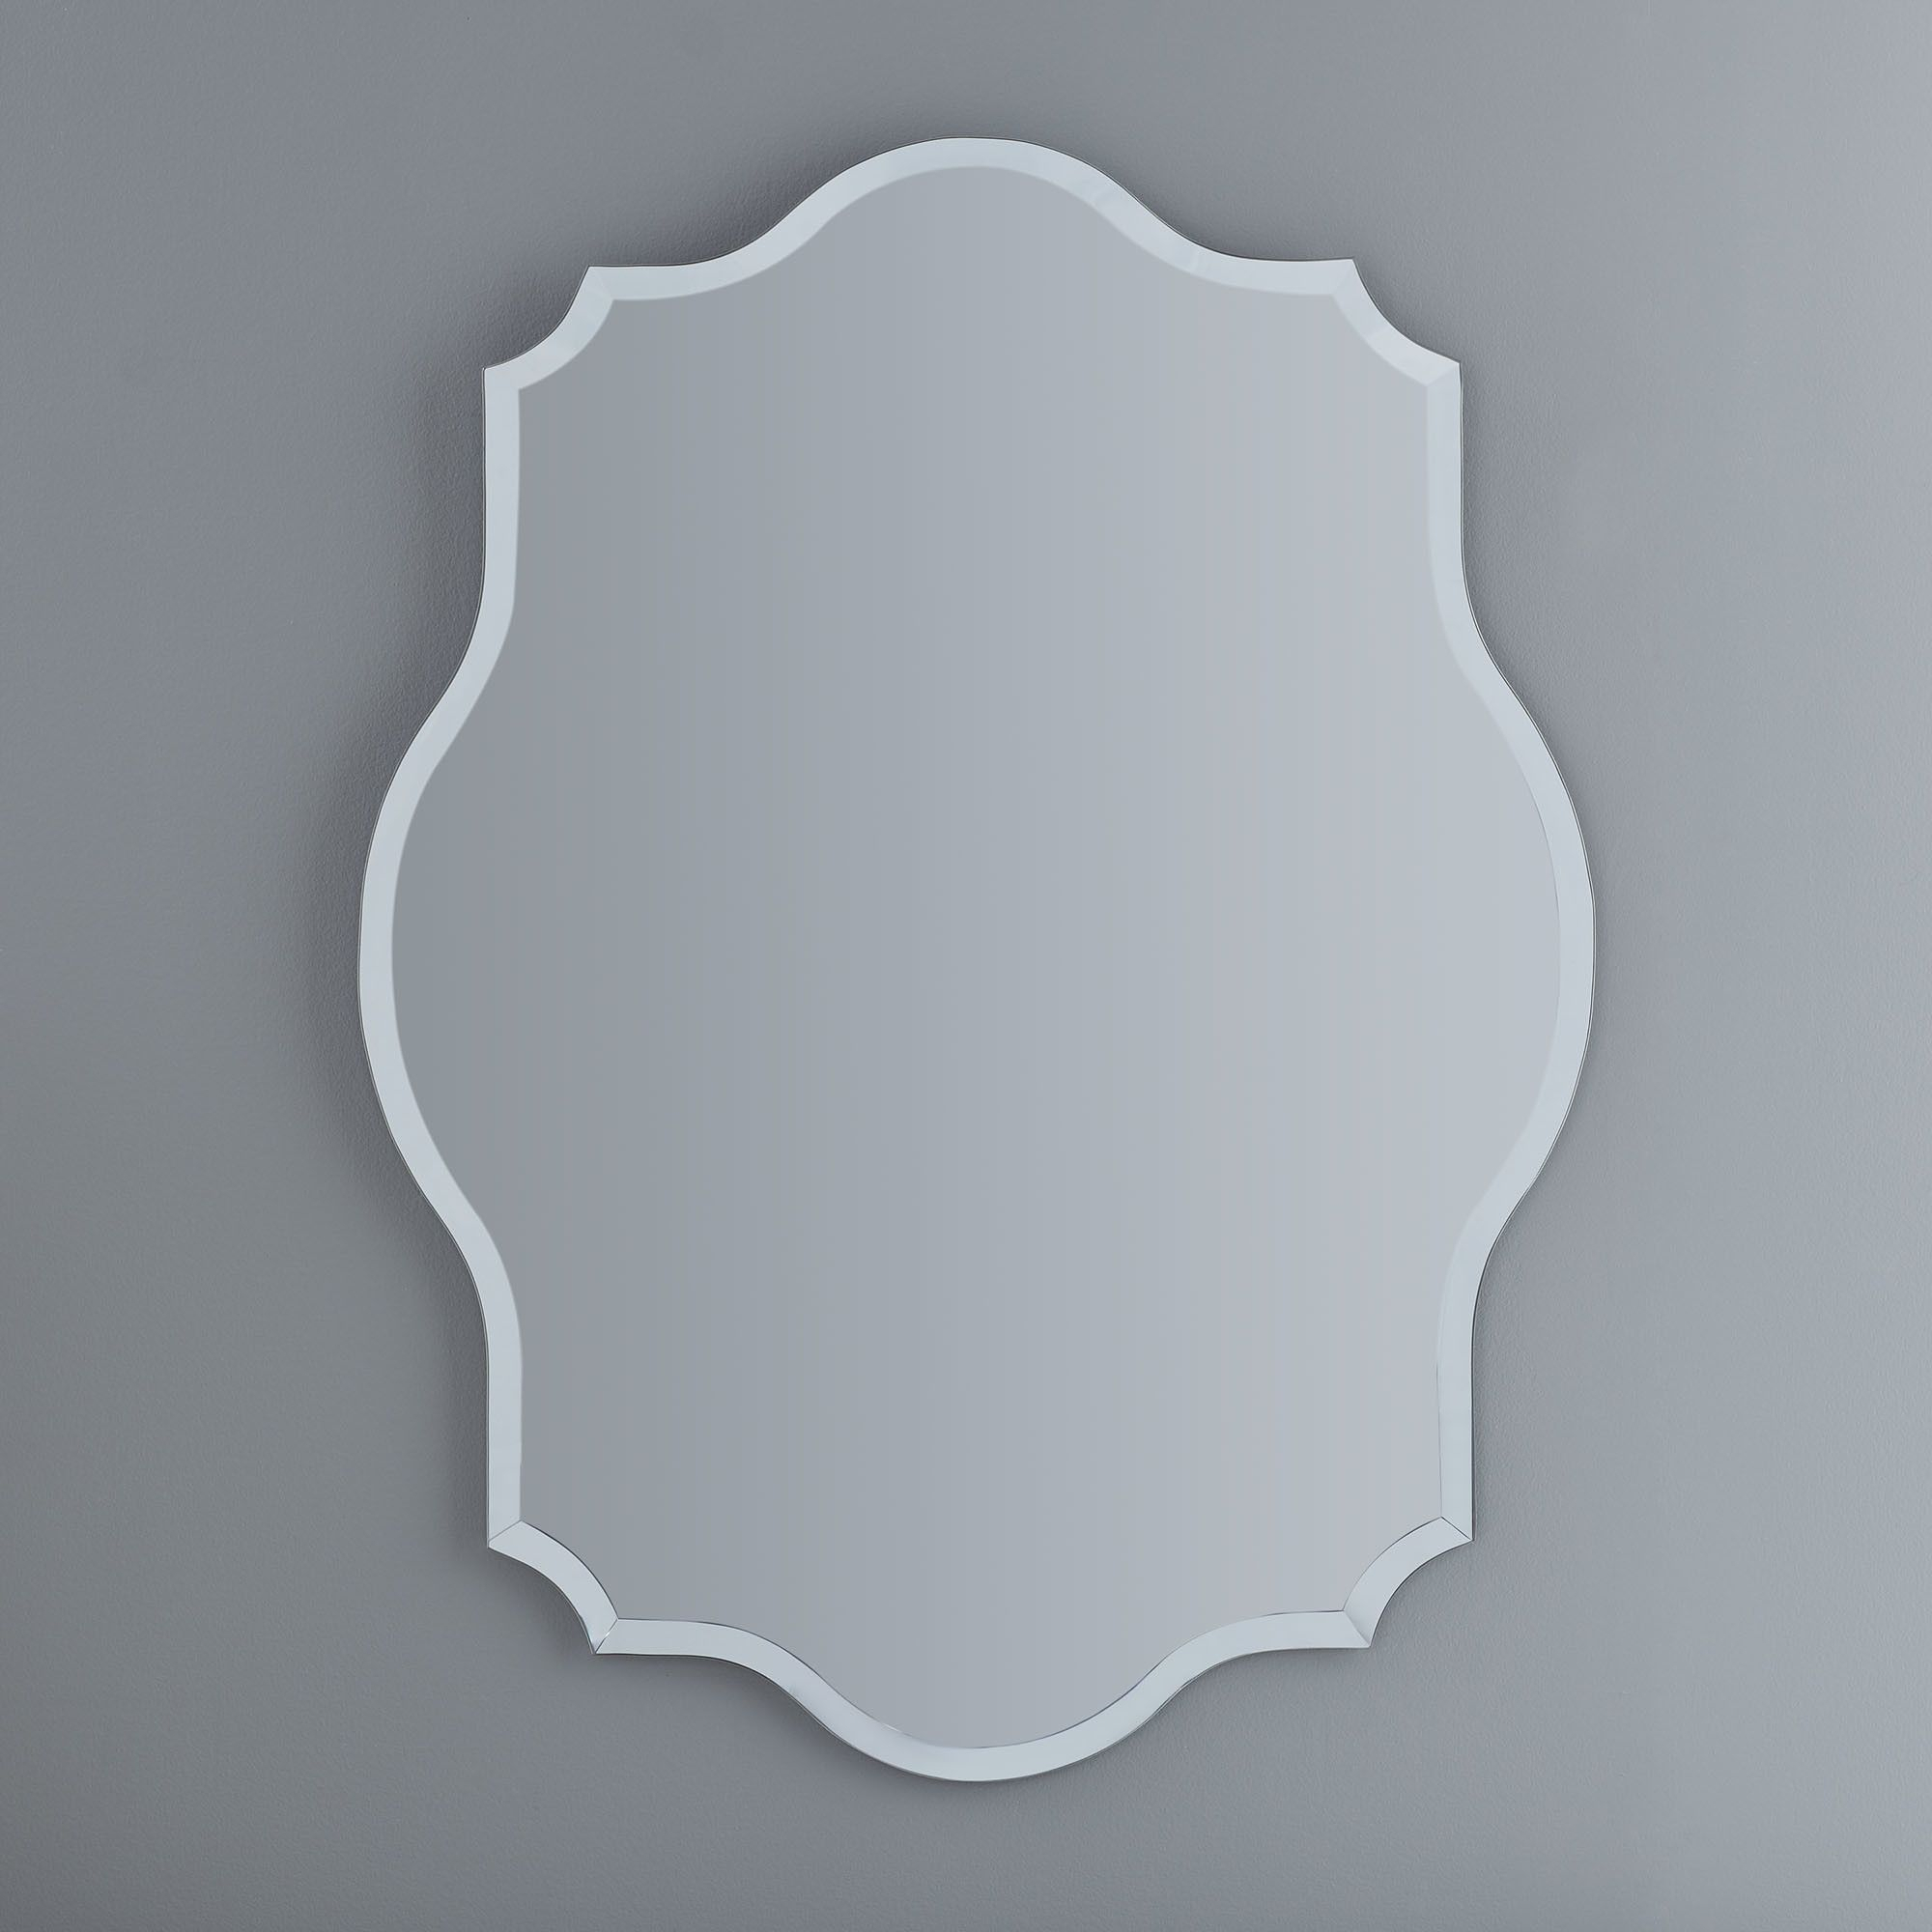 Guidinha Modern & Contemporary Accent Mirror | Products Pertaining To Guidinha Modern & Contemporary Accent Mirrors (View 12 of 30)